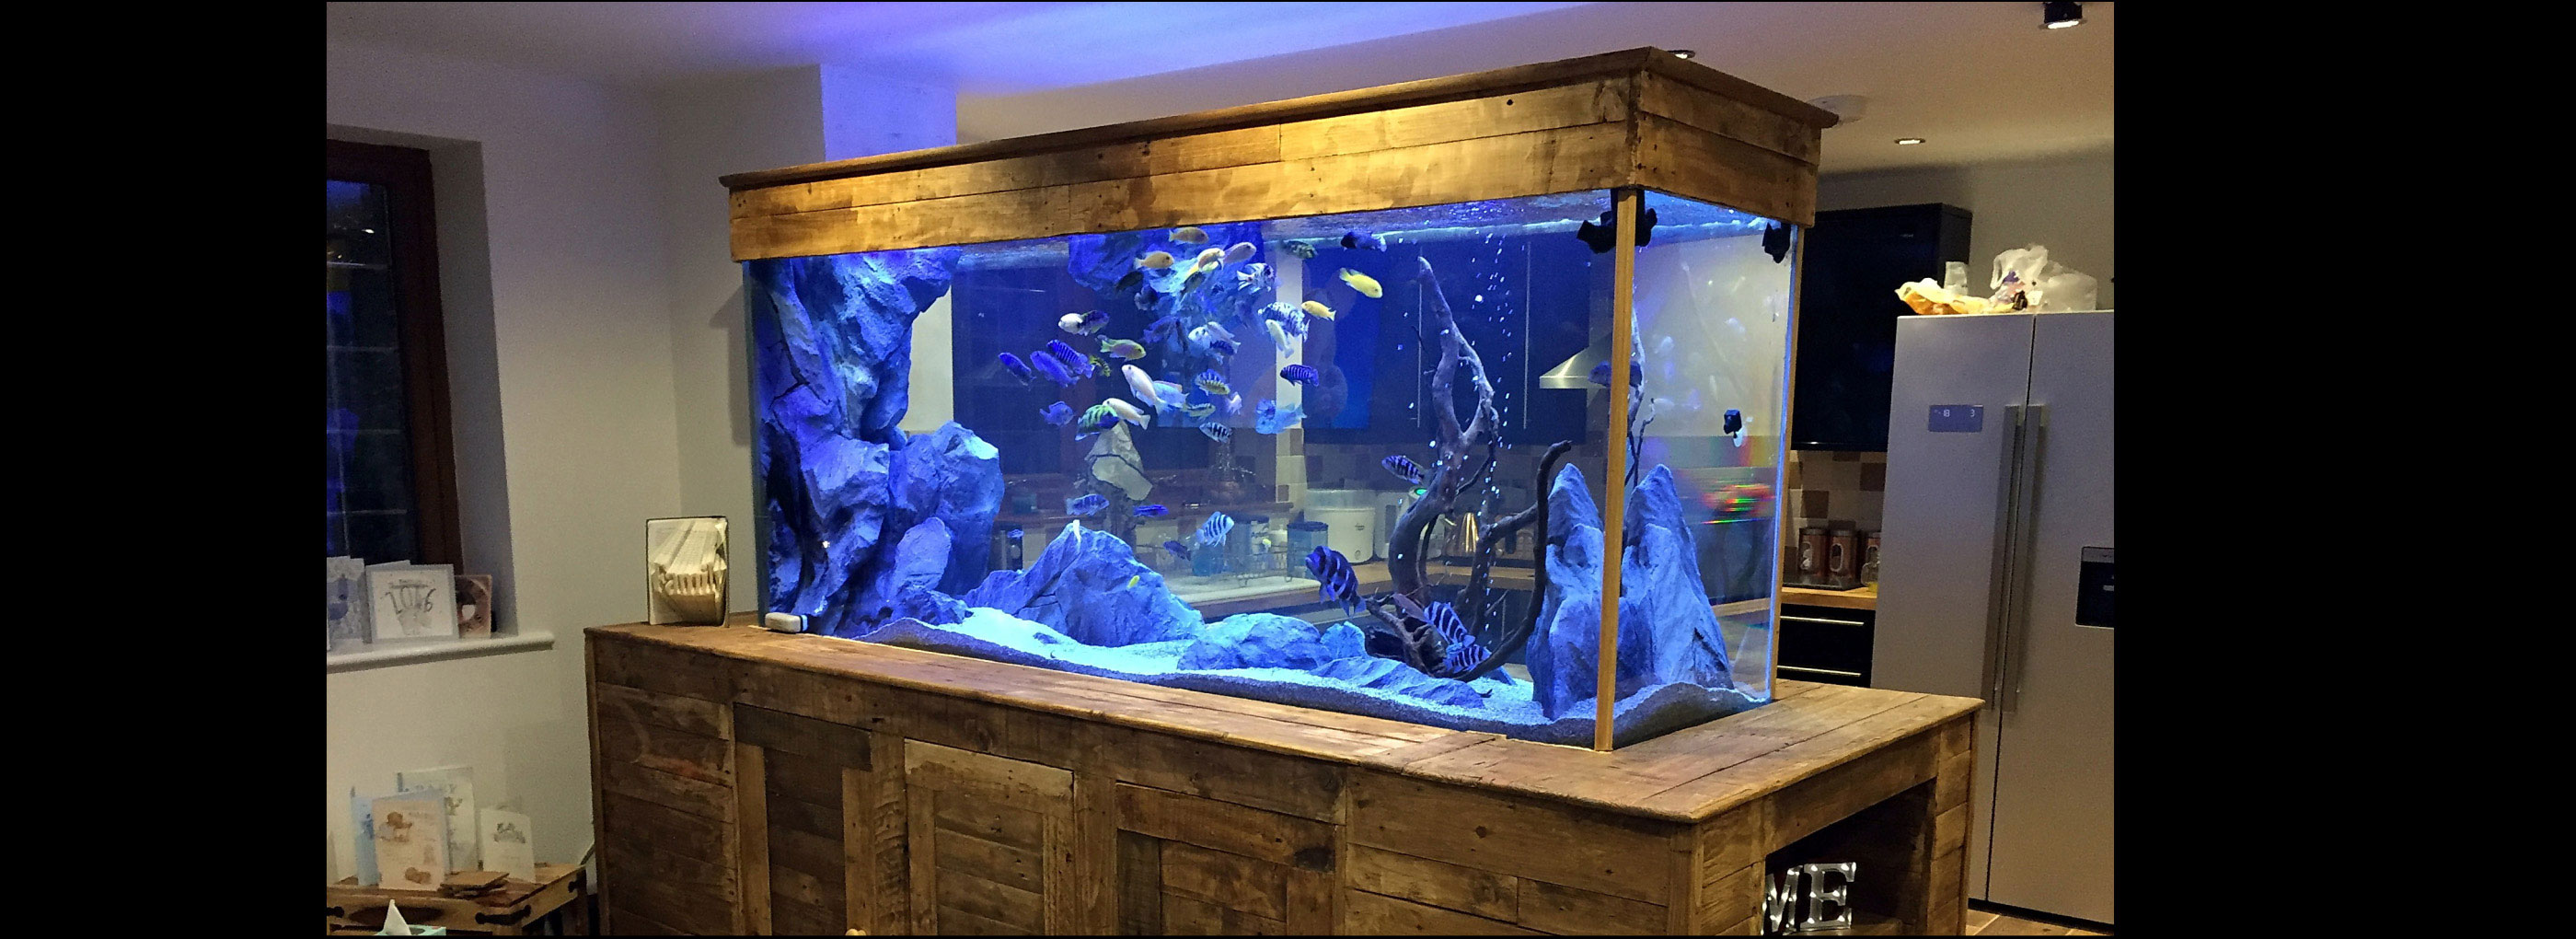 Gallery aquadecor backgrounds - Fish tank partition wall ...